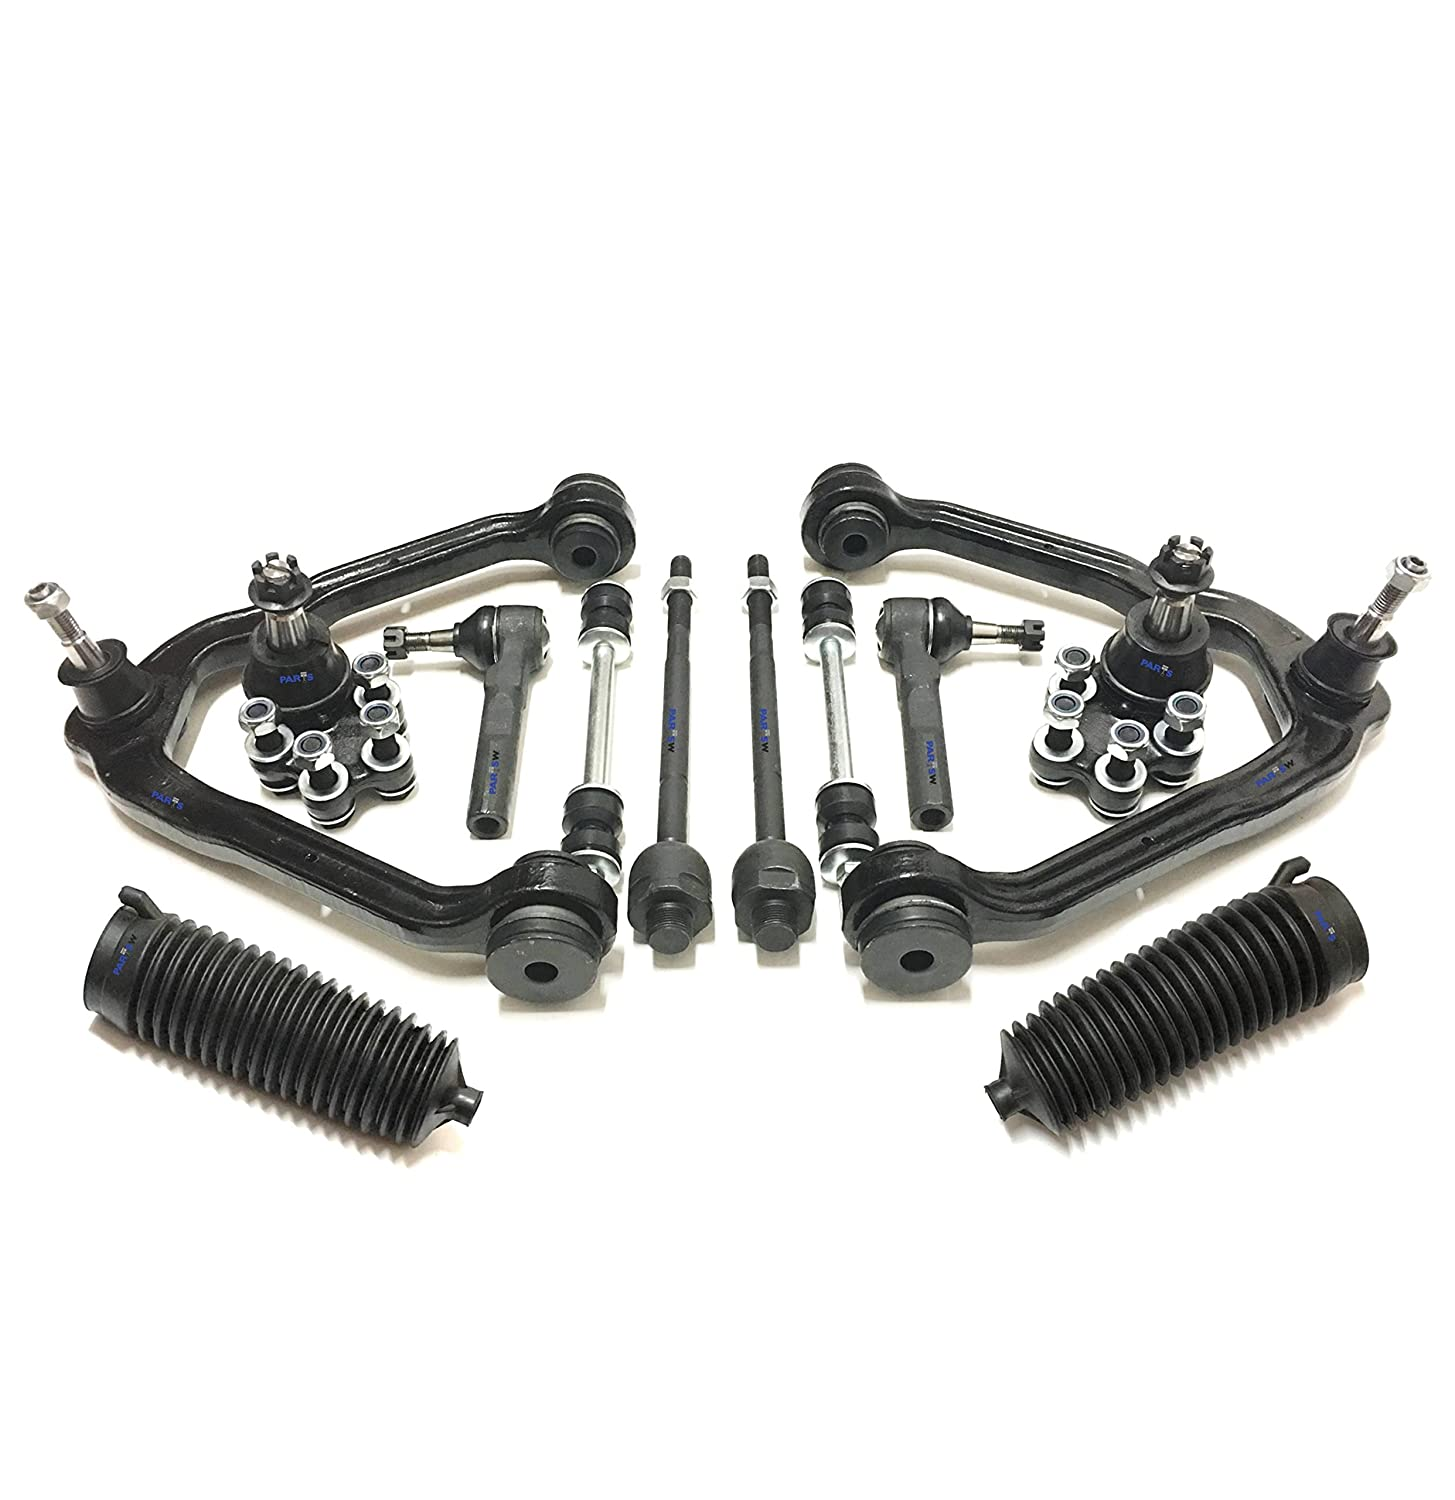 PartsW 6 Pc Front Upper Control Arm Ball Joints Sway Bars Suspension Kit for CHEVROLET SILVERADO 1500 GMC SIERRA 1500 6-LUG MODELS ONLY Control Arms Control Arms & Parts